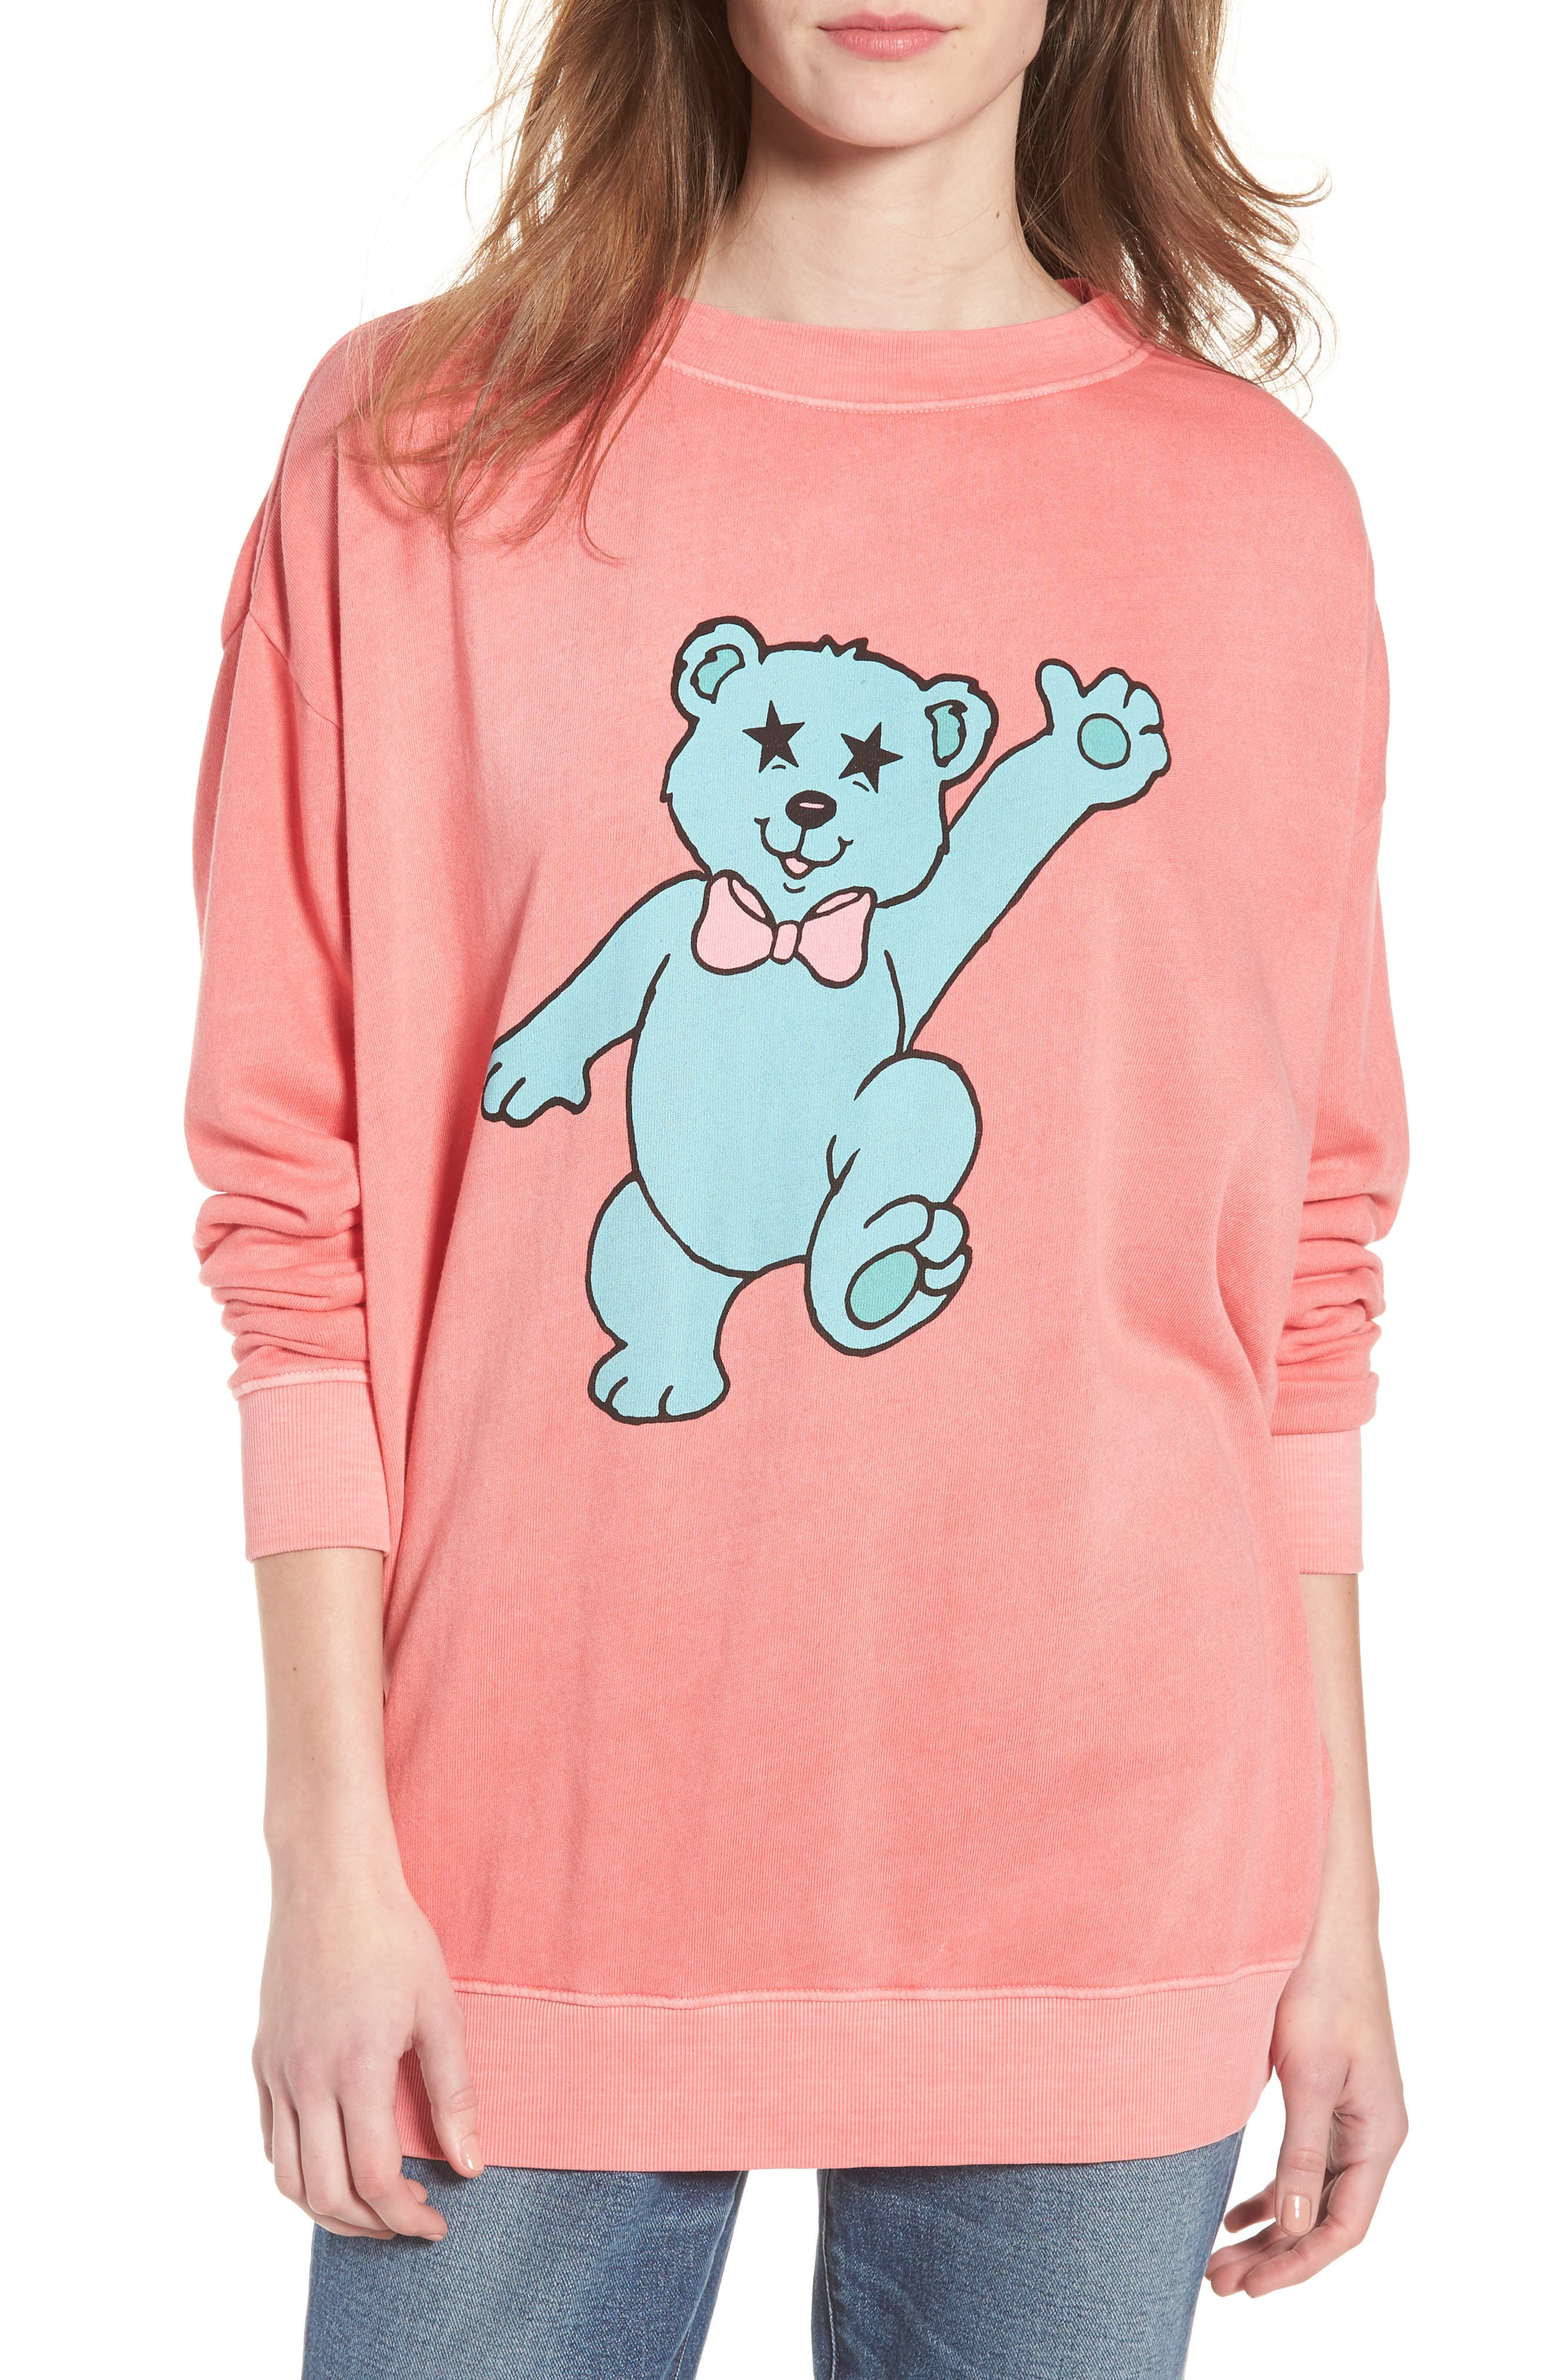 Groovy Teddy Road Trip Pullover Sweatshirt,                         Main,                         color, Pigment Red Flare